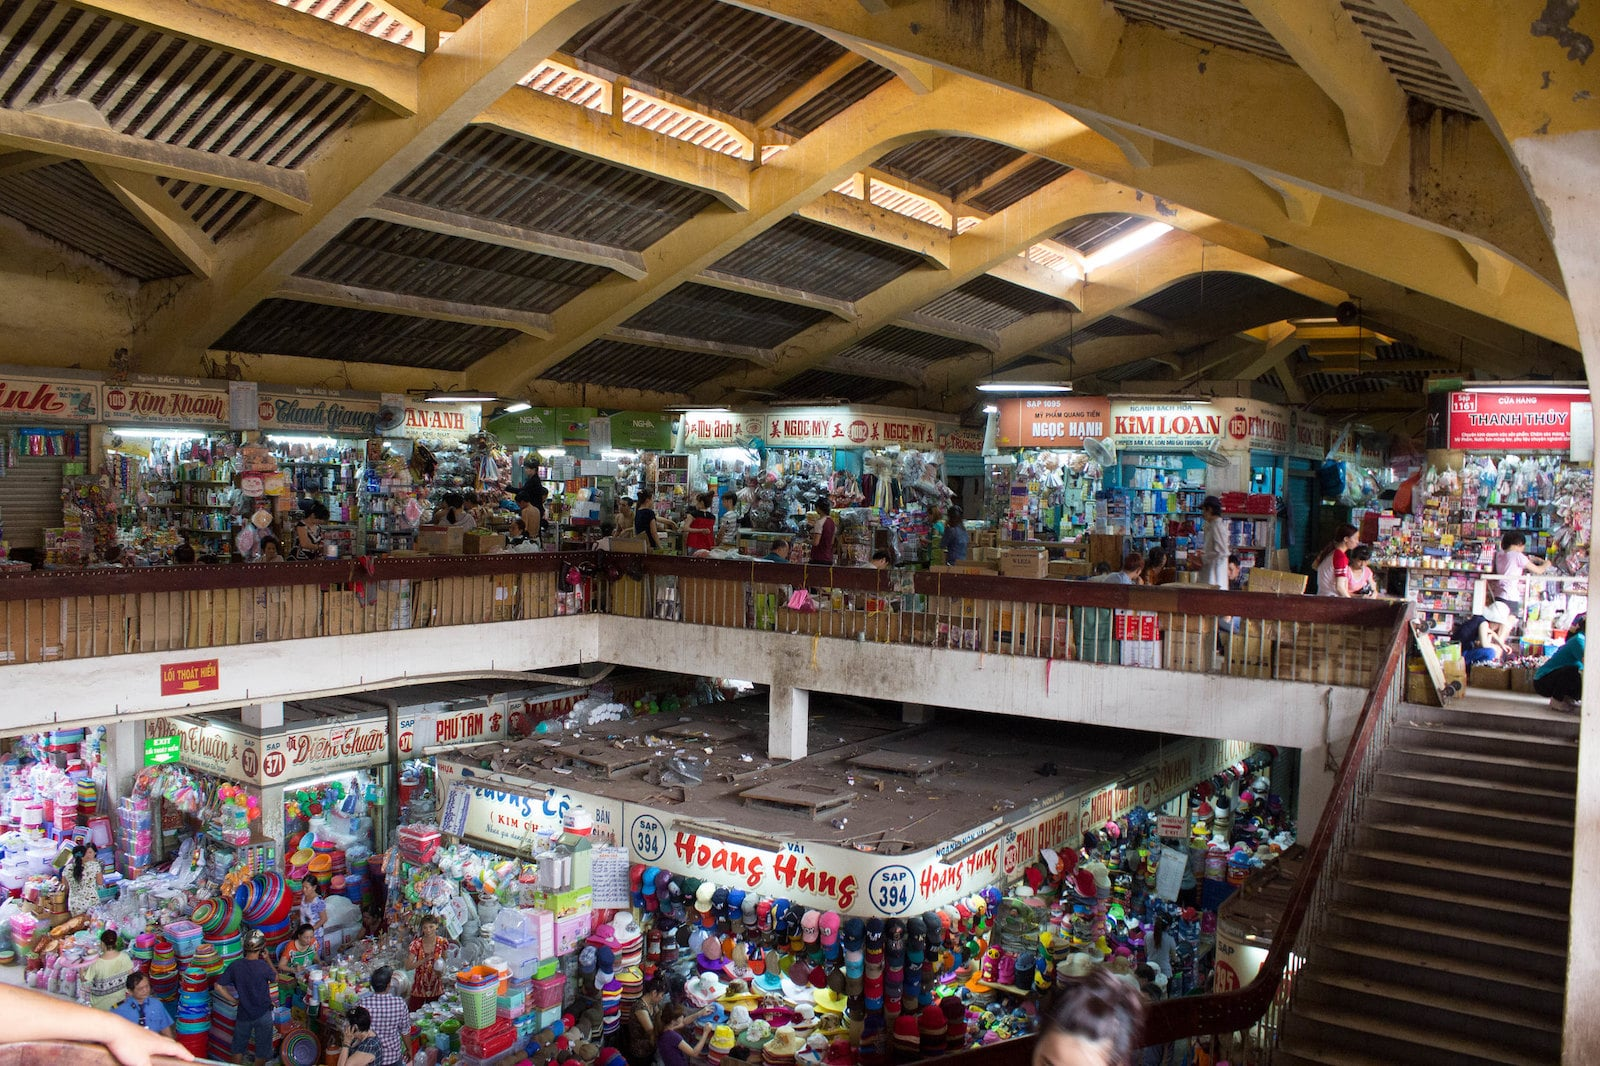 Image of the interior of the Cho Binh Tay Market interior in HCMC, Vietnam